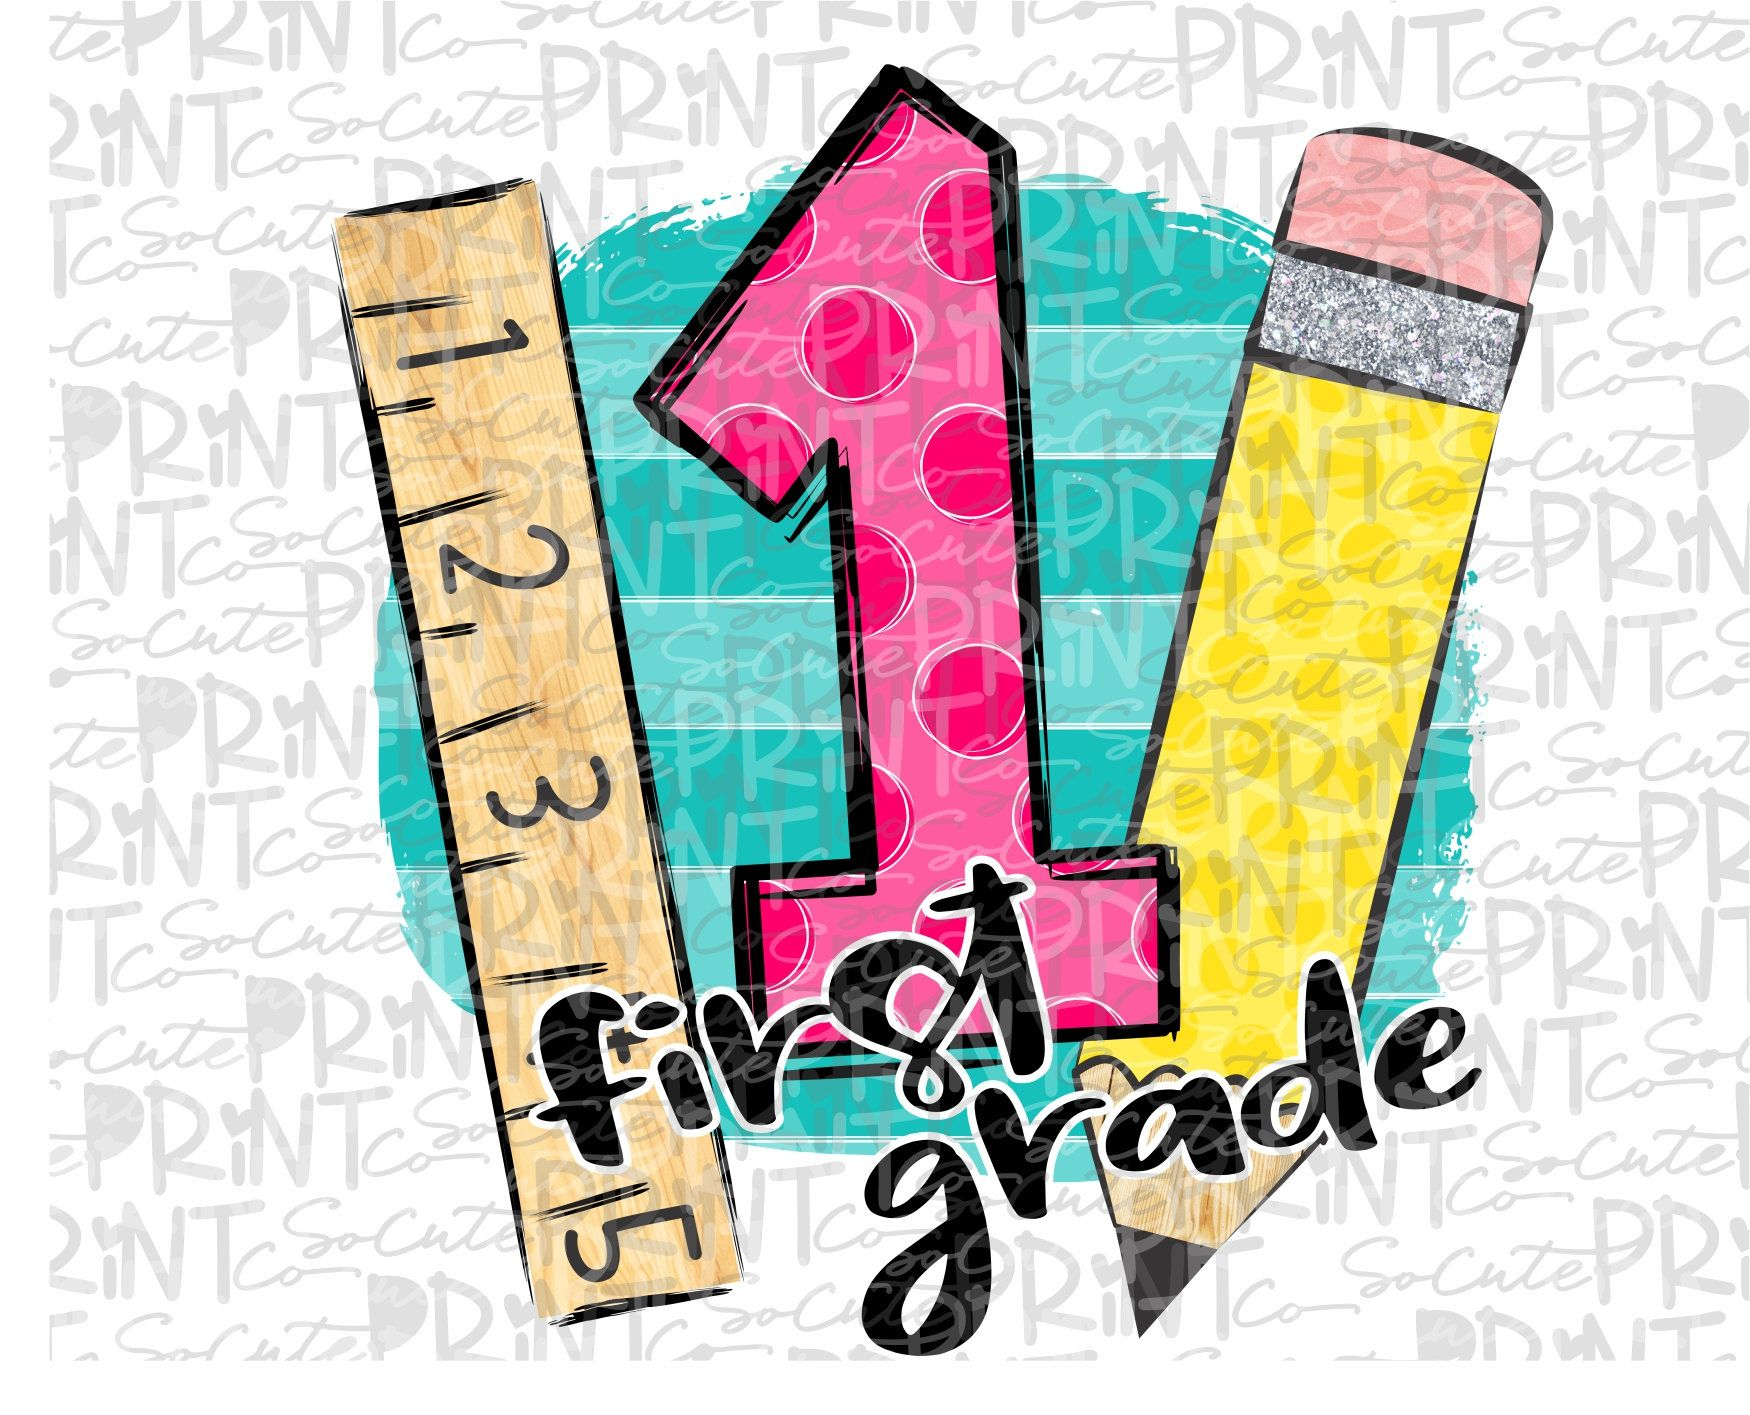 Back To School First Grade Clipart Polka Dot Pencil Png Etsy In 2021 First Day Of School Clip Art First Grade